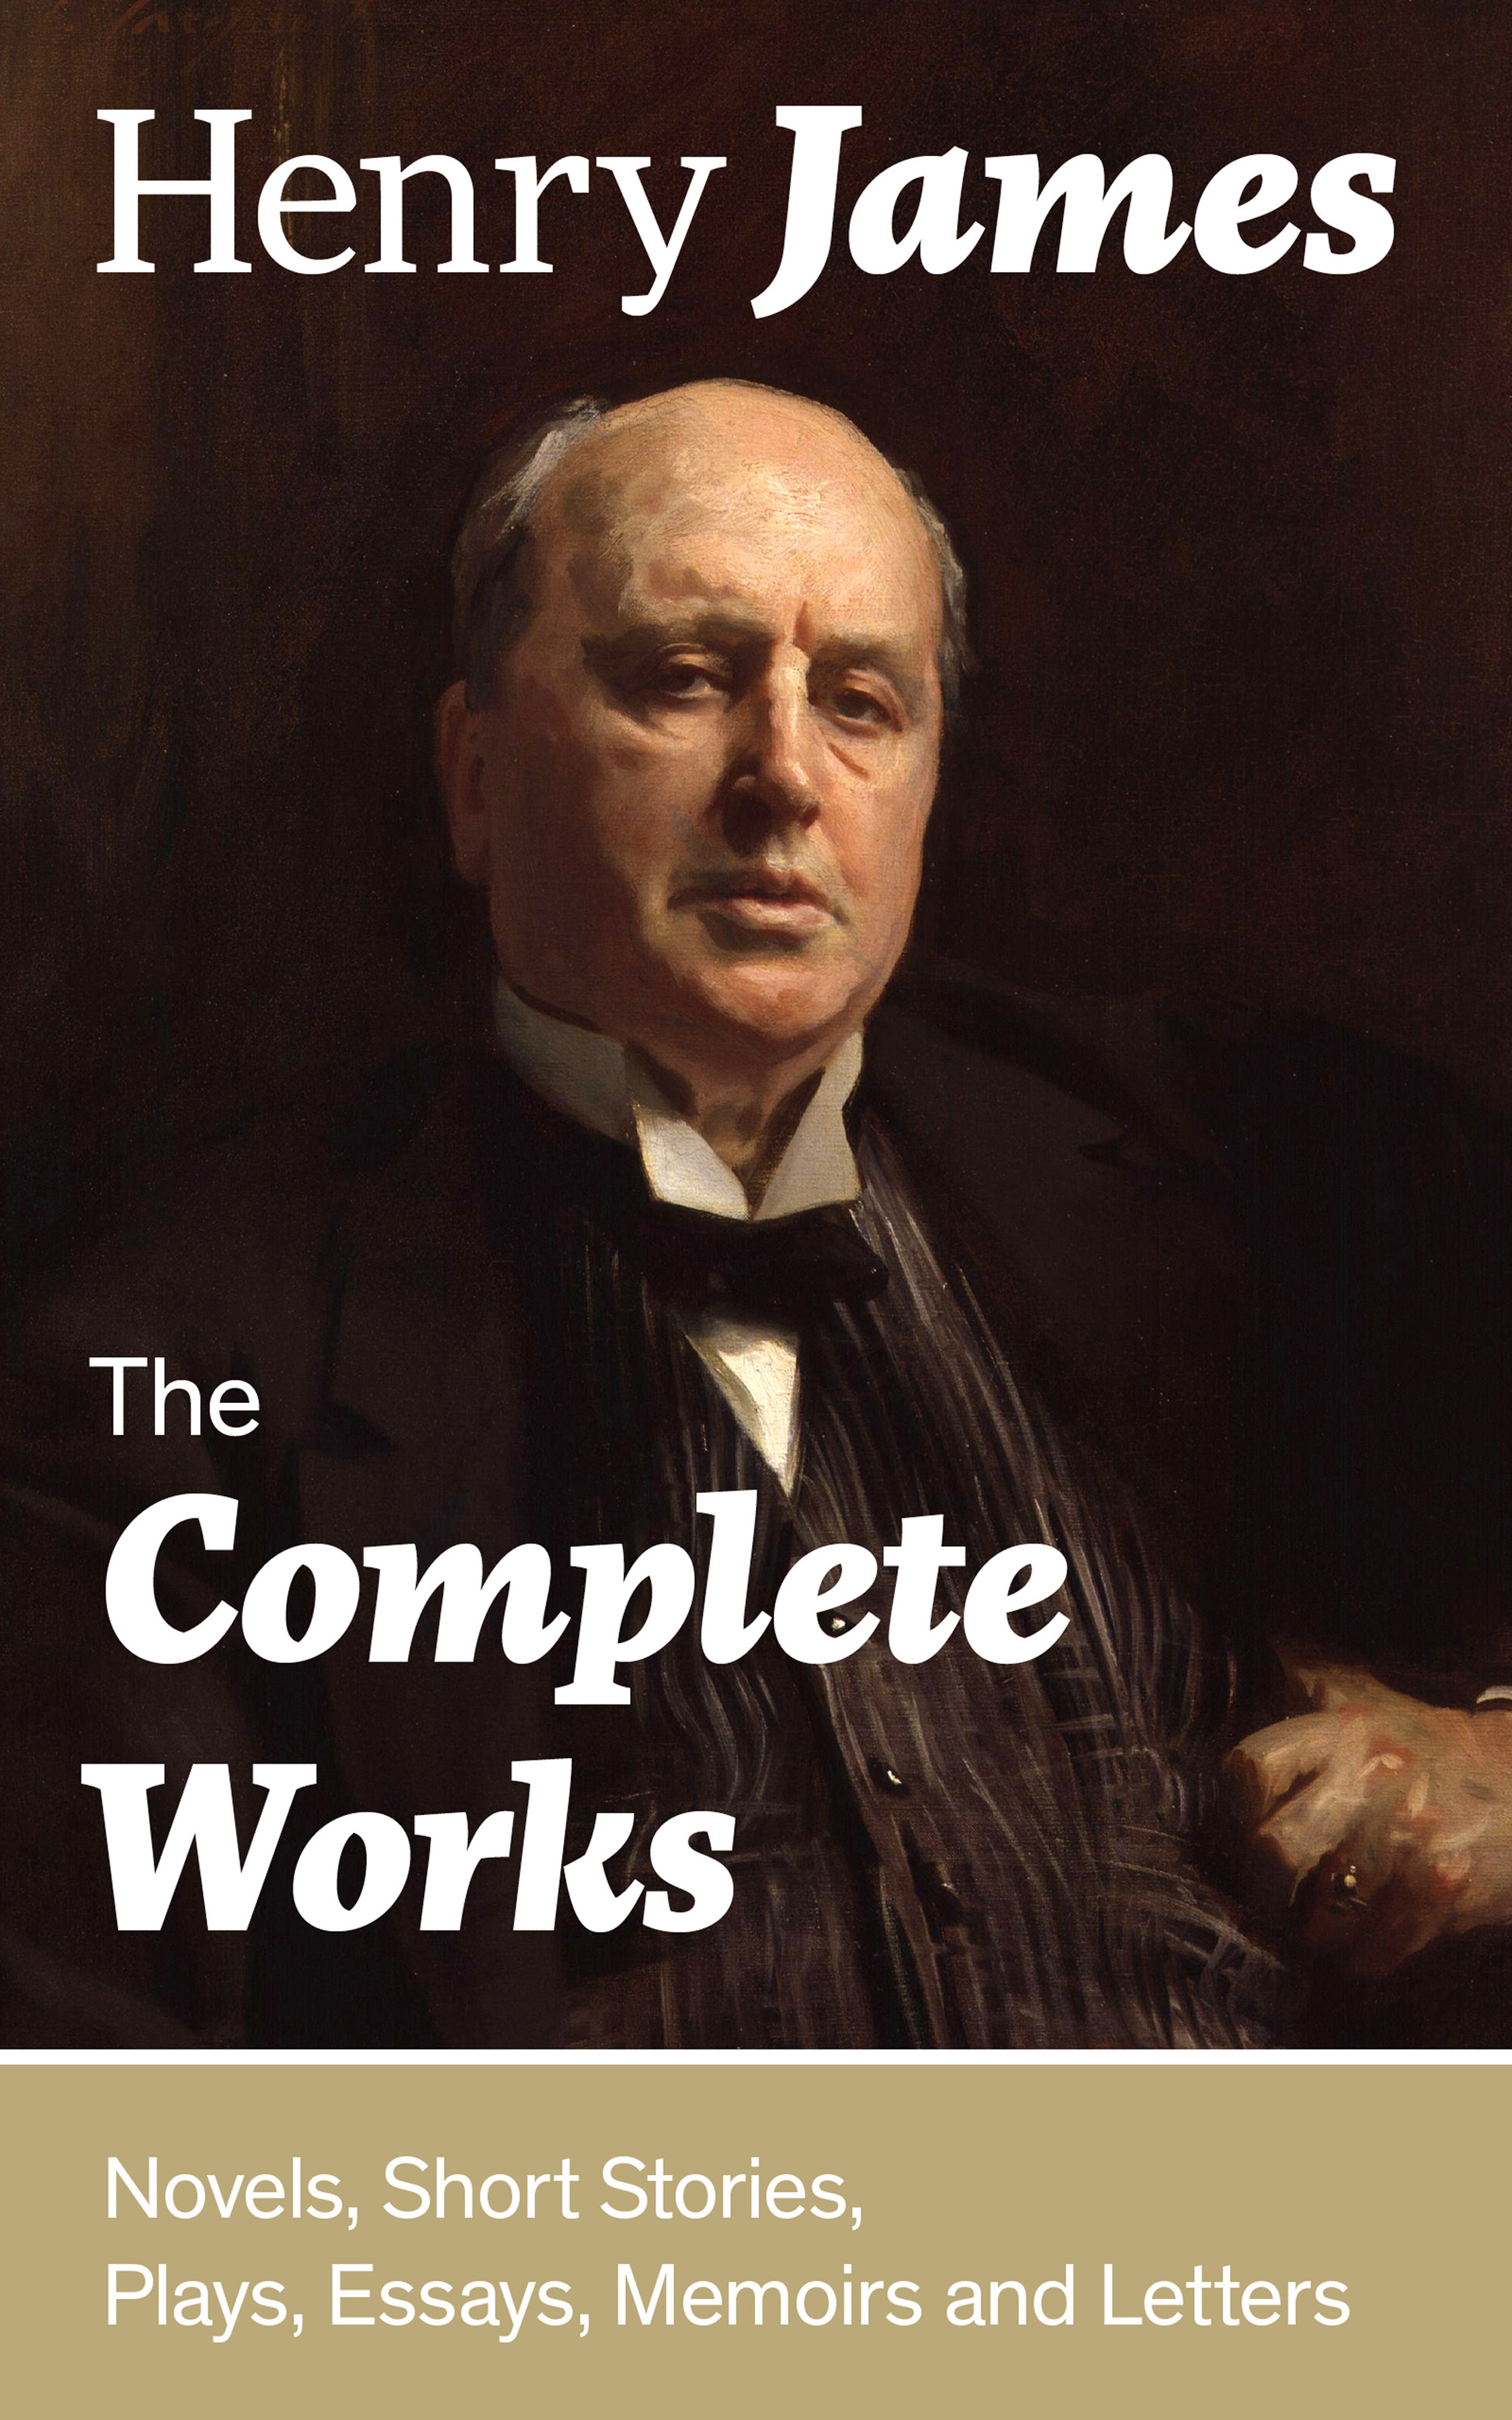 Henry Foss James The Complete Works: Novels, Short Stories, Plays, Essays, Memoirs and Letters: The Portrait of a Lady, The Wings of the Dove, The American, The Bostonians, The Ambassadors, What Maisie Knew, Washington Square, Daisy Miller… henry foss james the ambassadors the unabridged edition